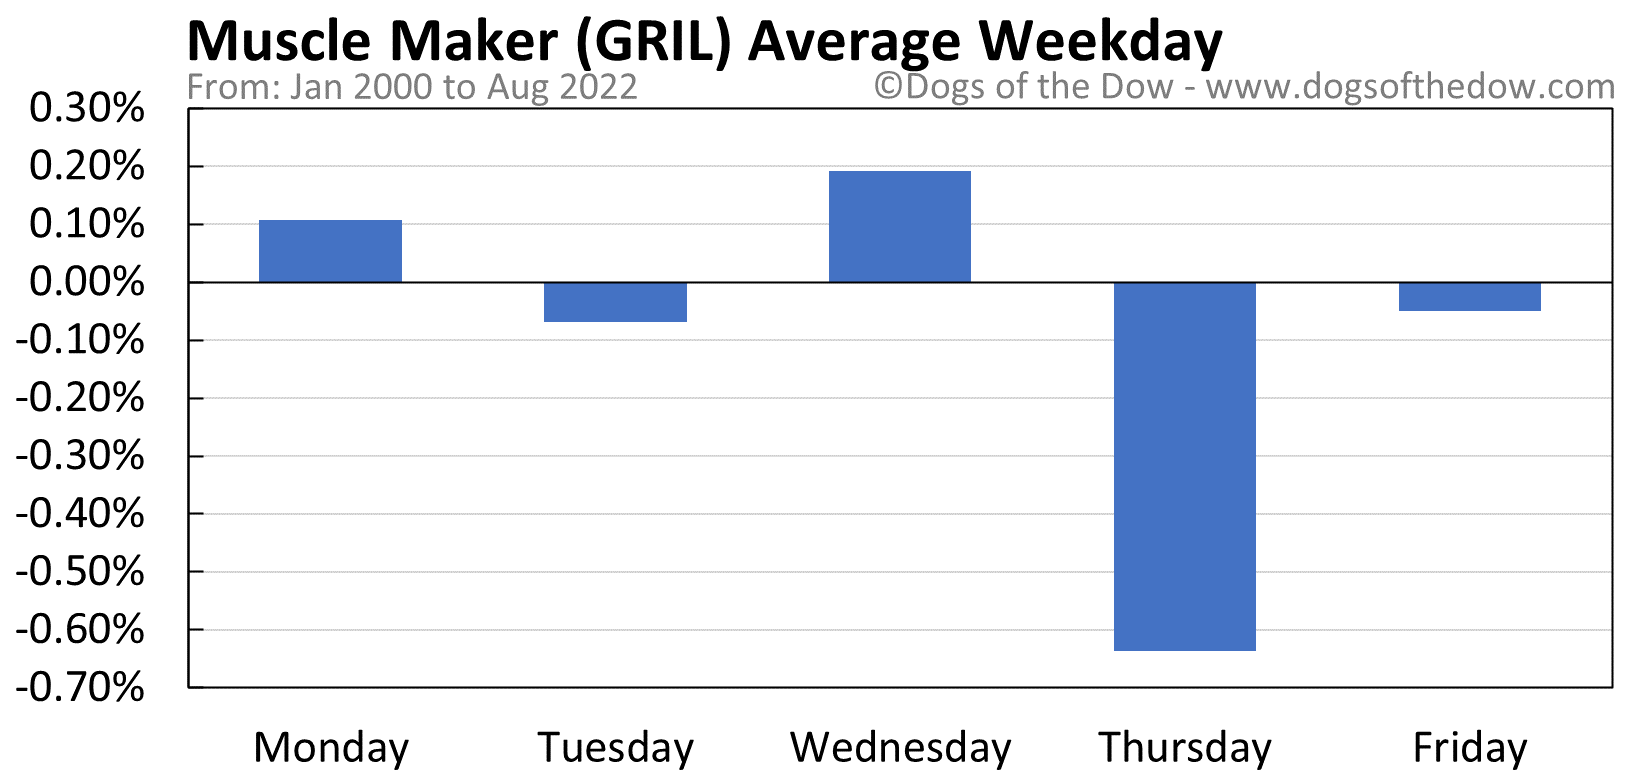 GRIL average weekday chart